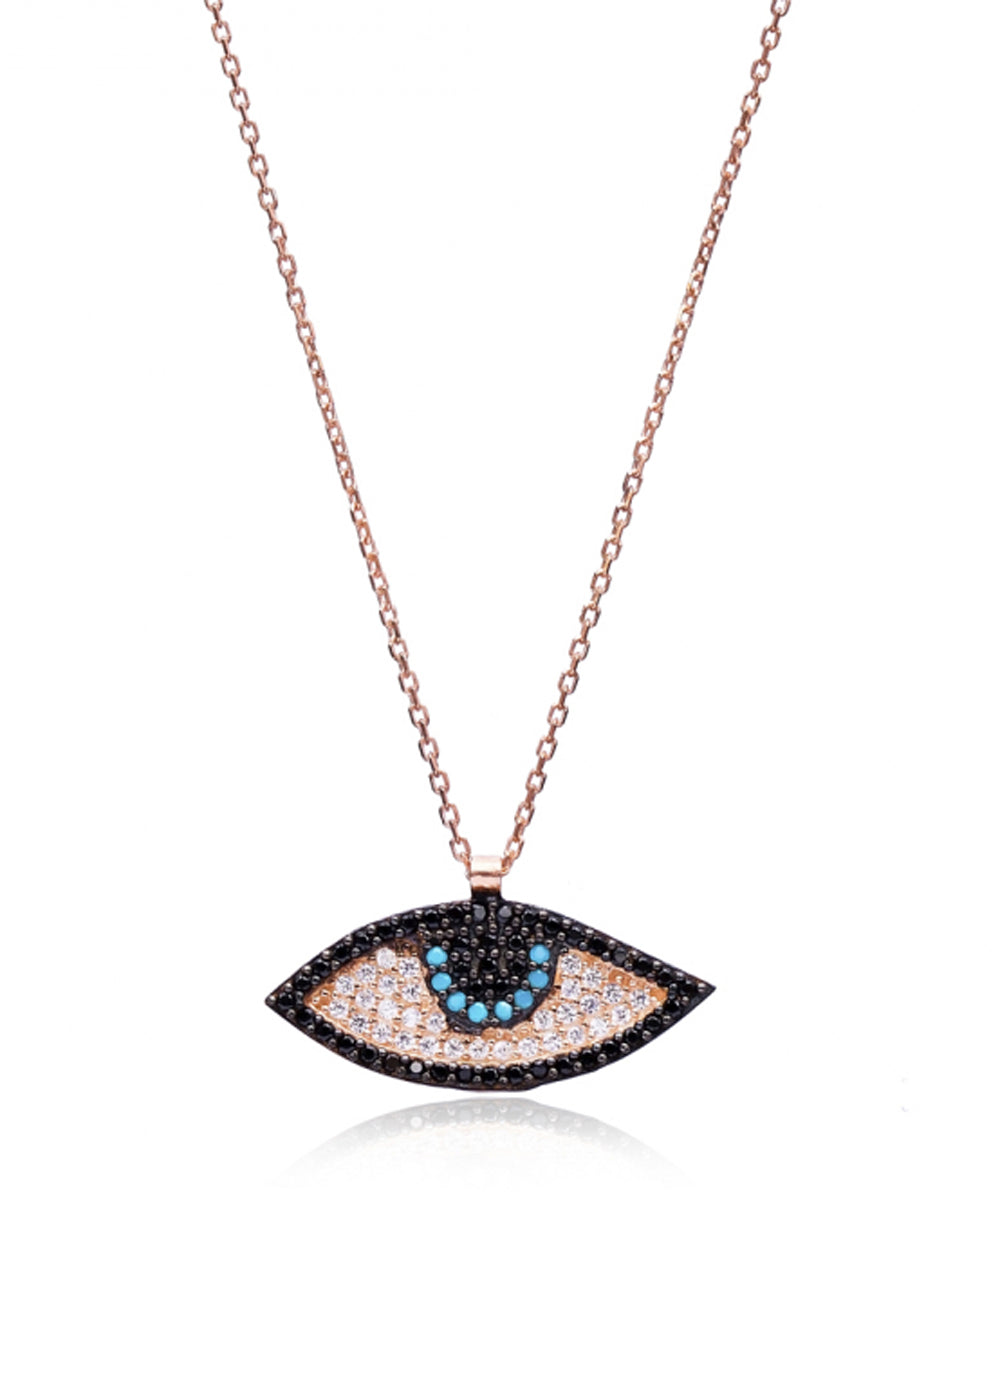 Be Gone Crystal Evil Eye Necklace